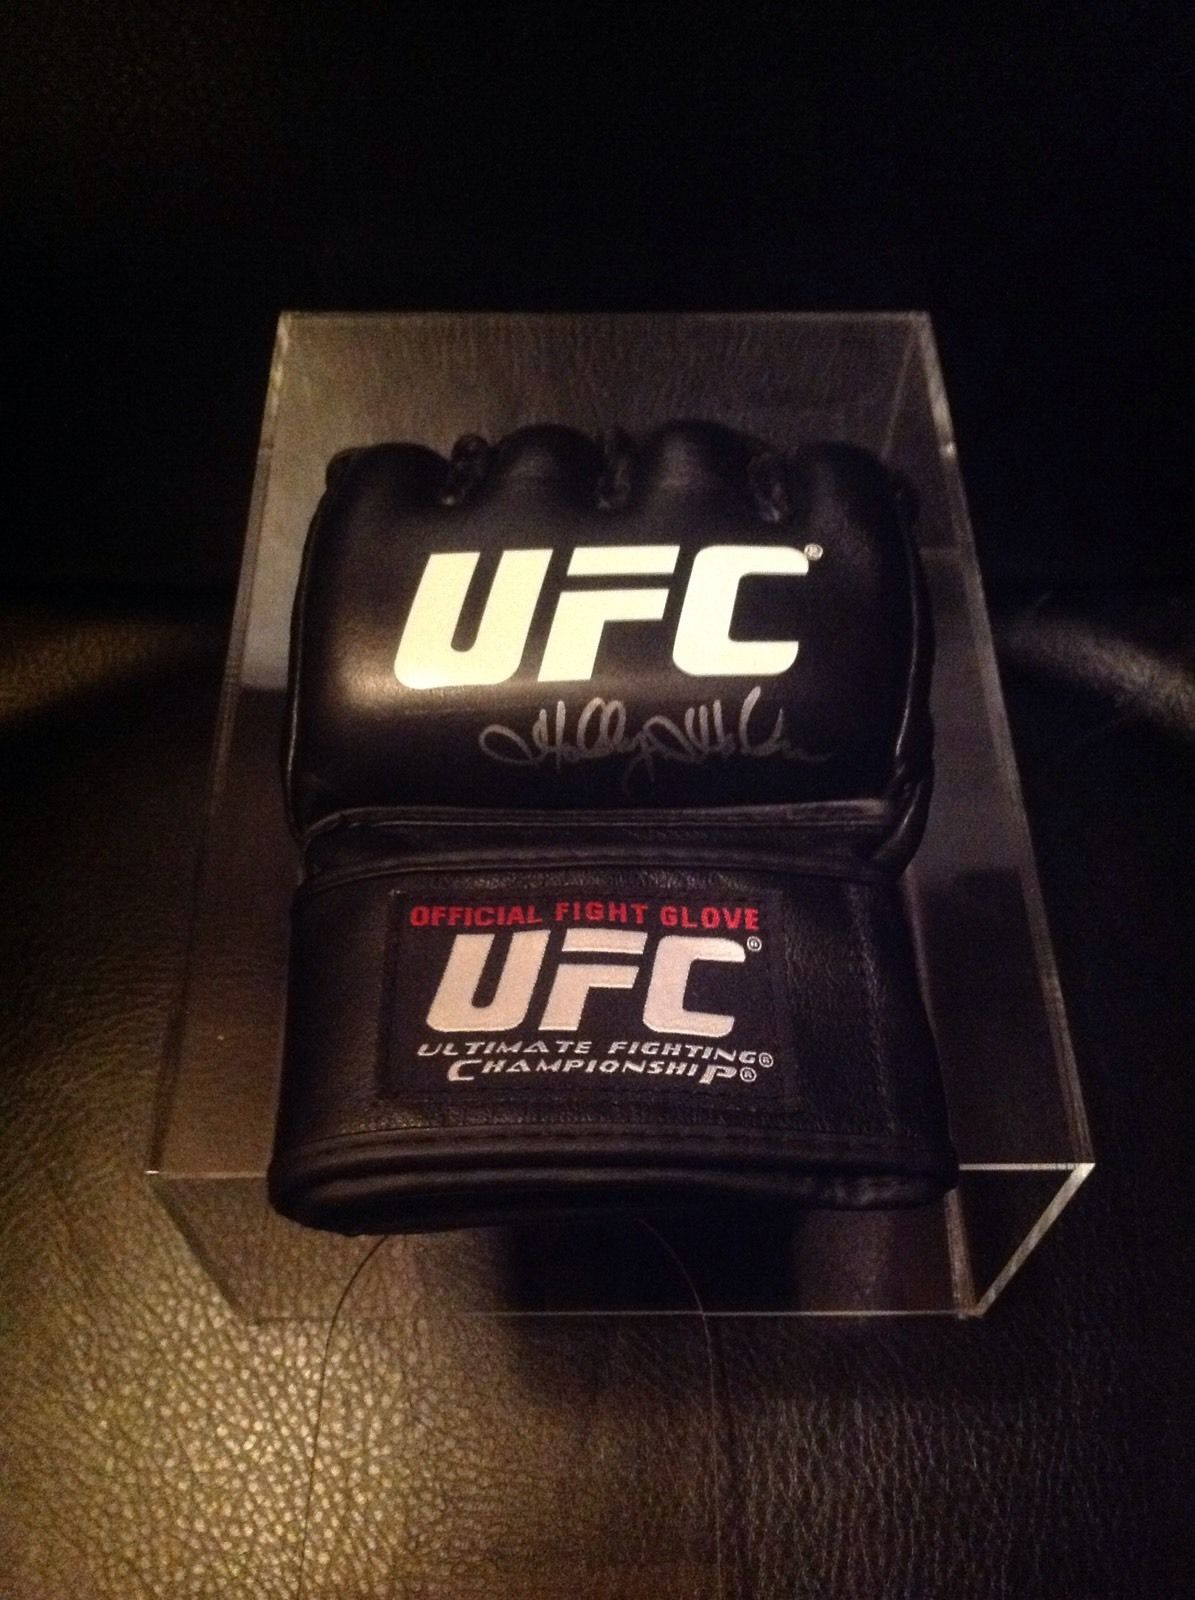 Holly Holm Personally Signed UFC Glove